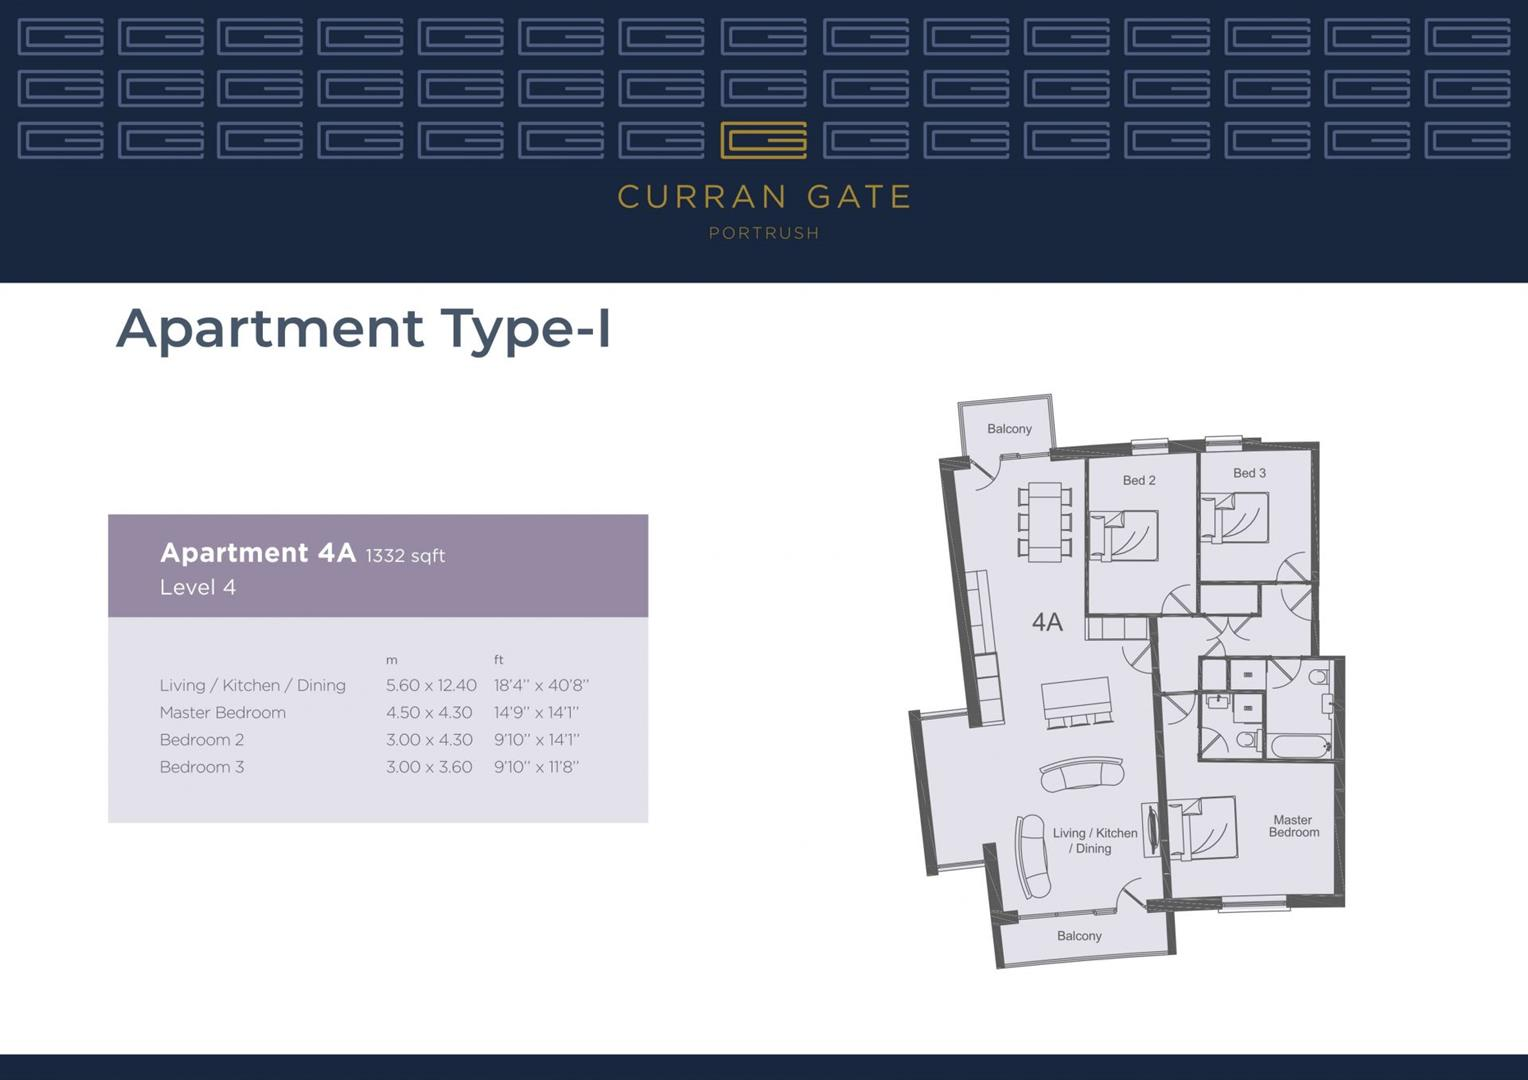 4a-curran-gate-portrush-homepage-estate-agents-typ